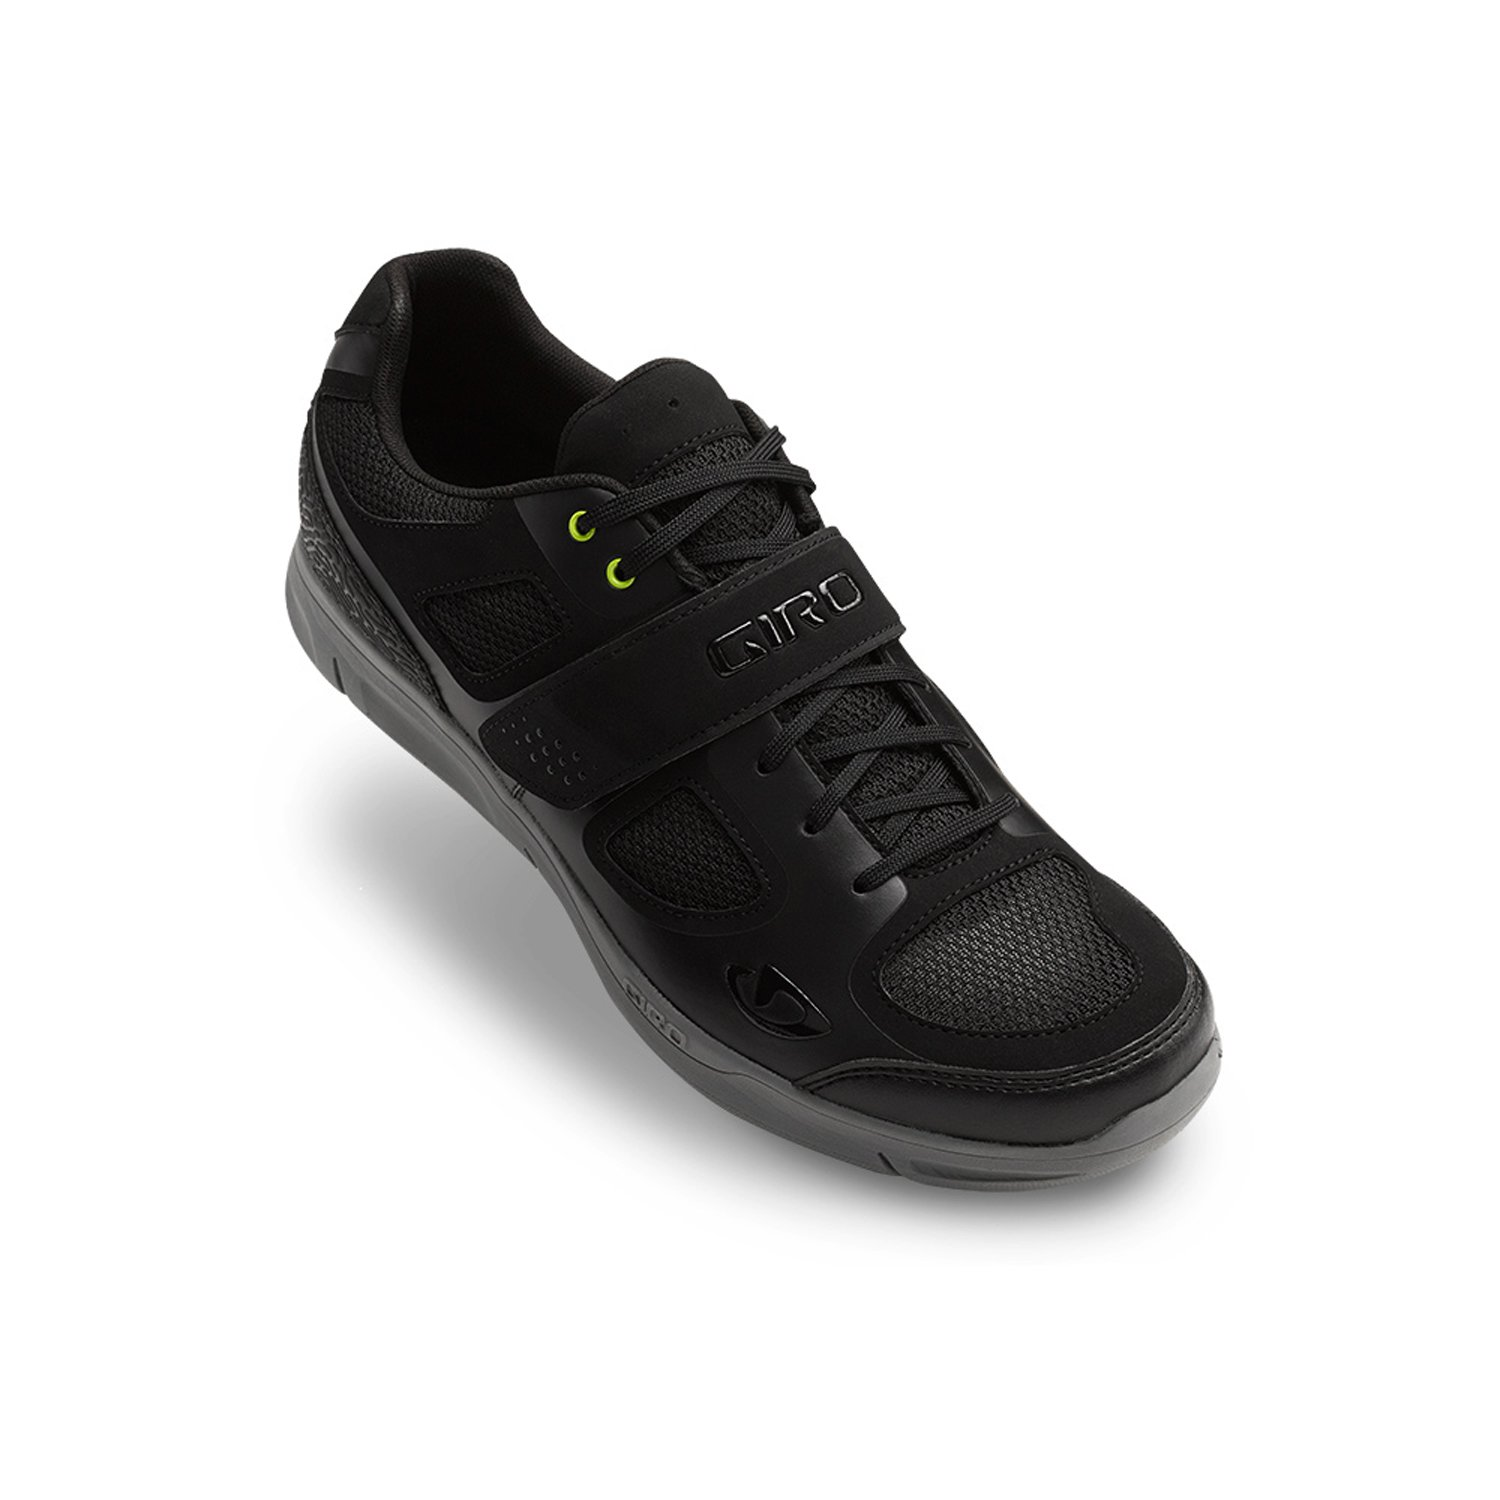 Giro Grynd Shoe - Men's Black Squiggle 48